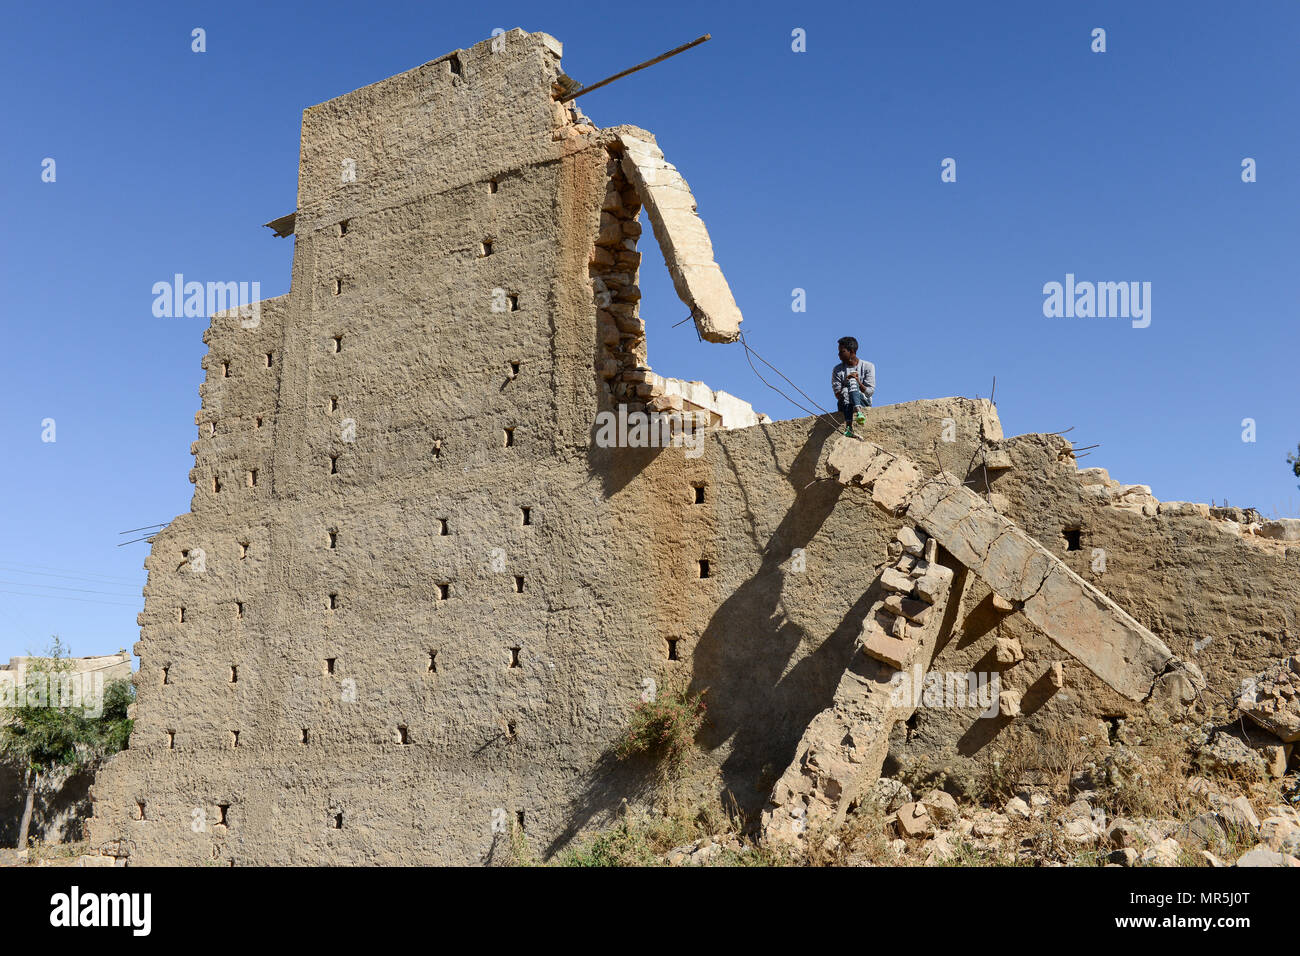 ETHIOPIA, Tigray, Zalembessa, border town to Eritrea, war damages from the ongoing conflict between Ethiopia and Eritrea - Stock Image